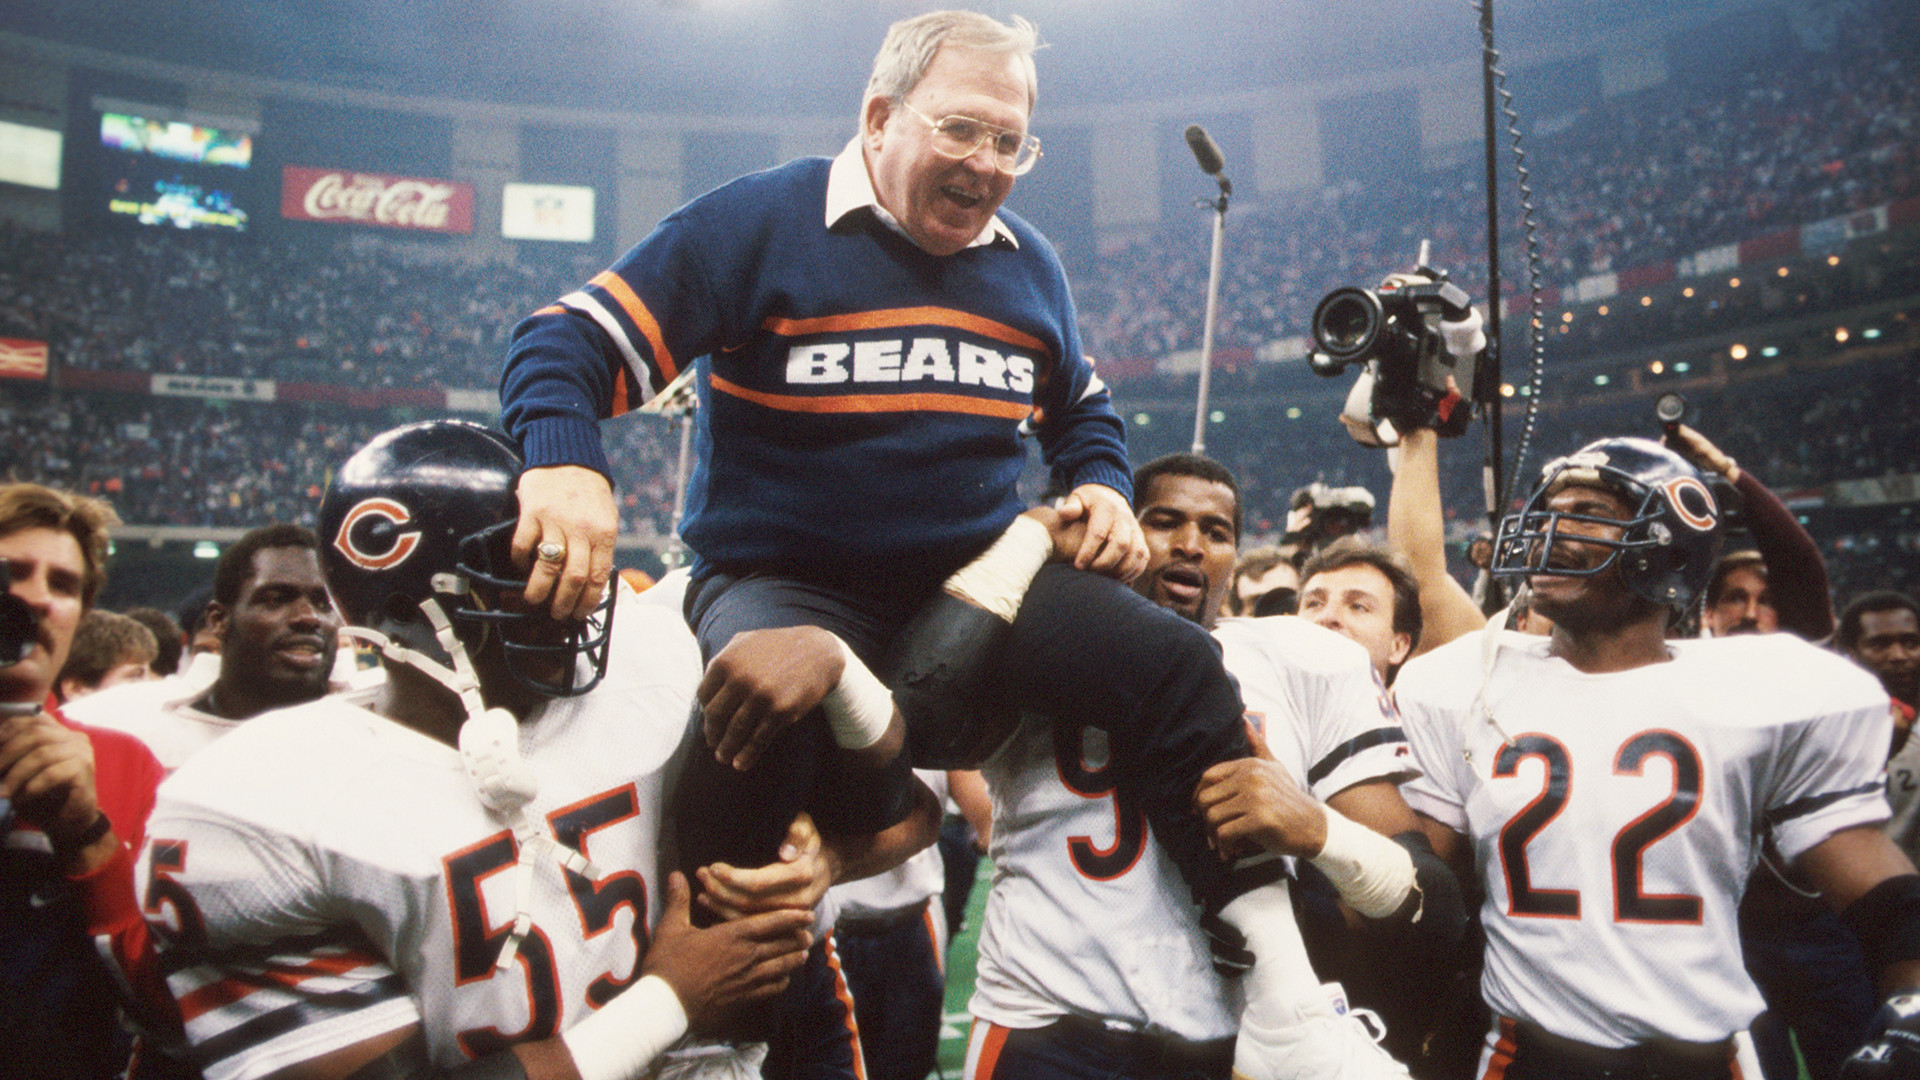 1920x1080 Players, colleagues pay respects to former Bears defensive whiz Buddy Ryan  - Chicago Tribune